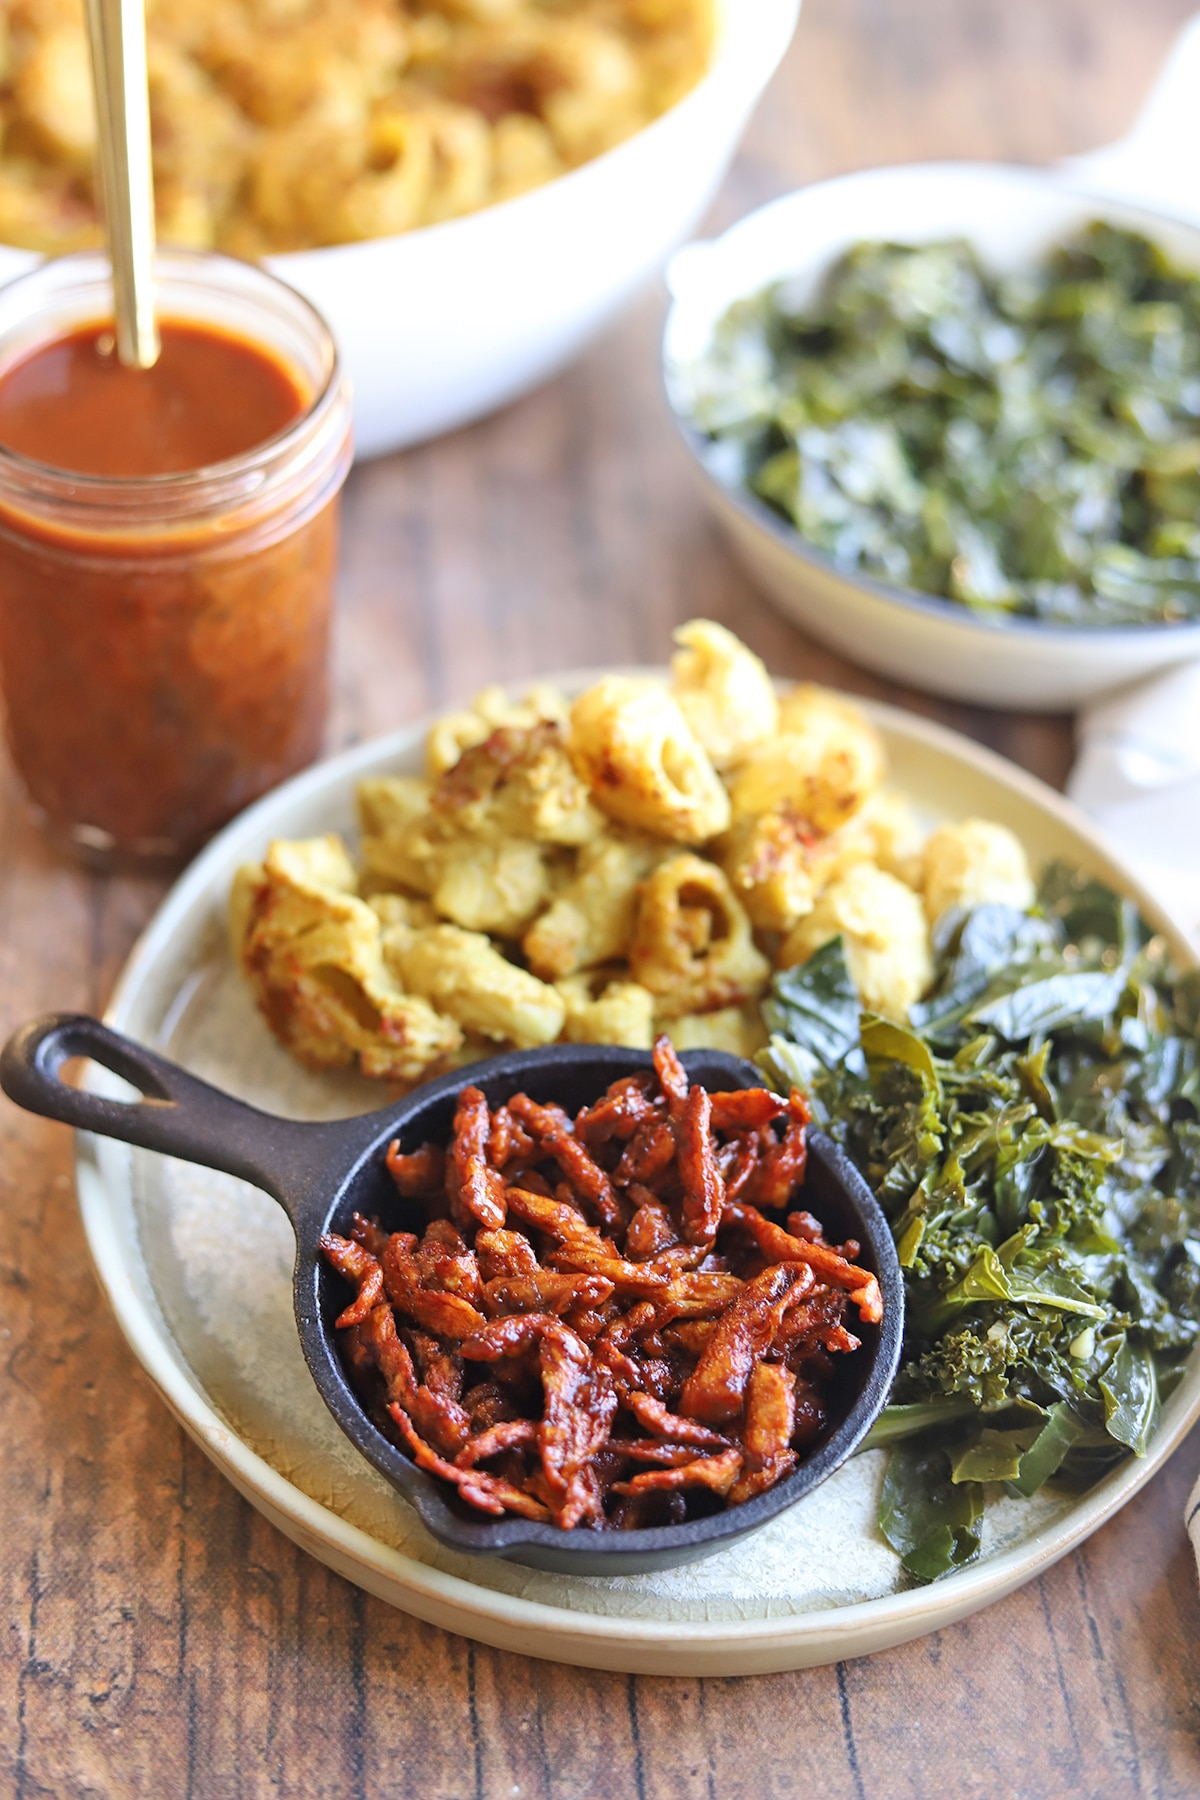 Barbecued Soy Curls on plate with collard greens & non-dairy mac & cheese.